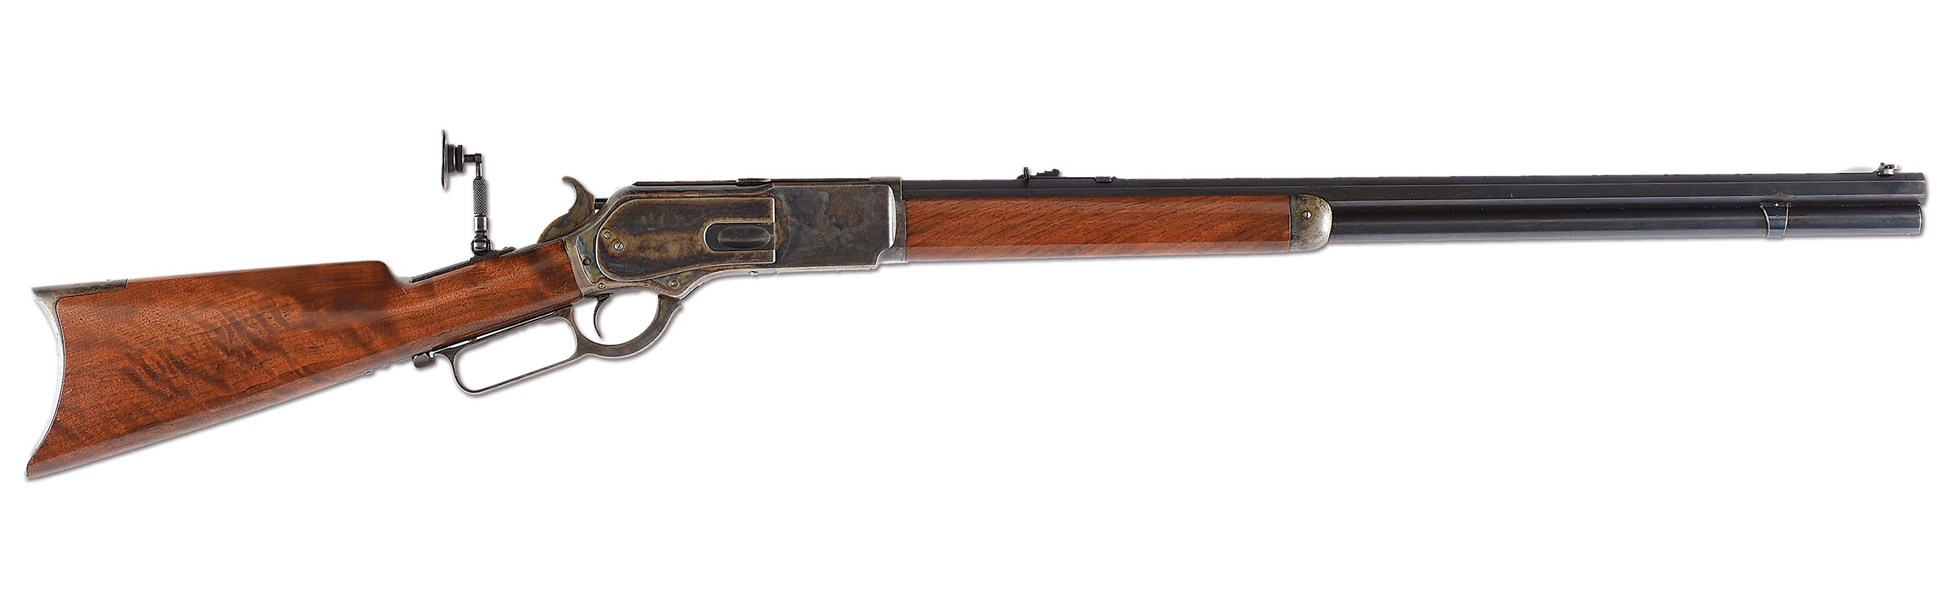 (A)OUTSTANDING CASE COLOR 1876 WINCHESTER IN 50 EXPRESS CALIBER